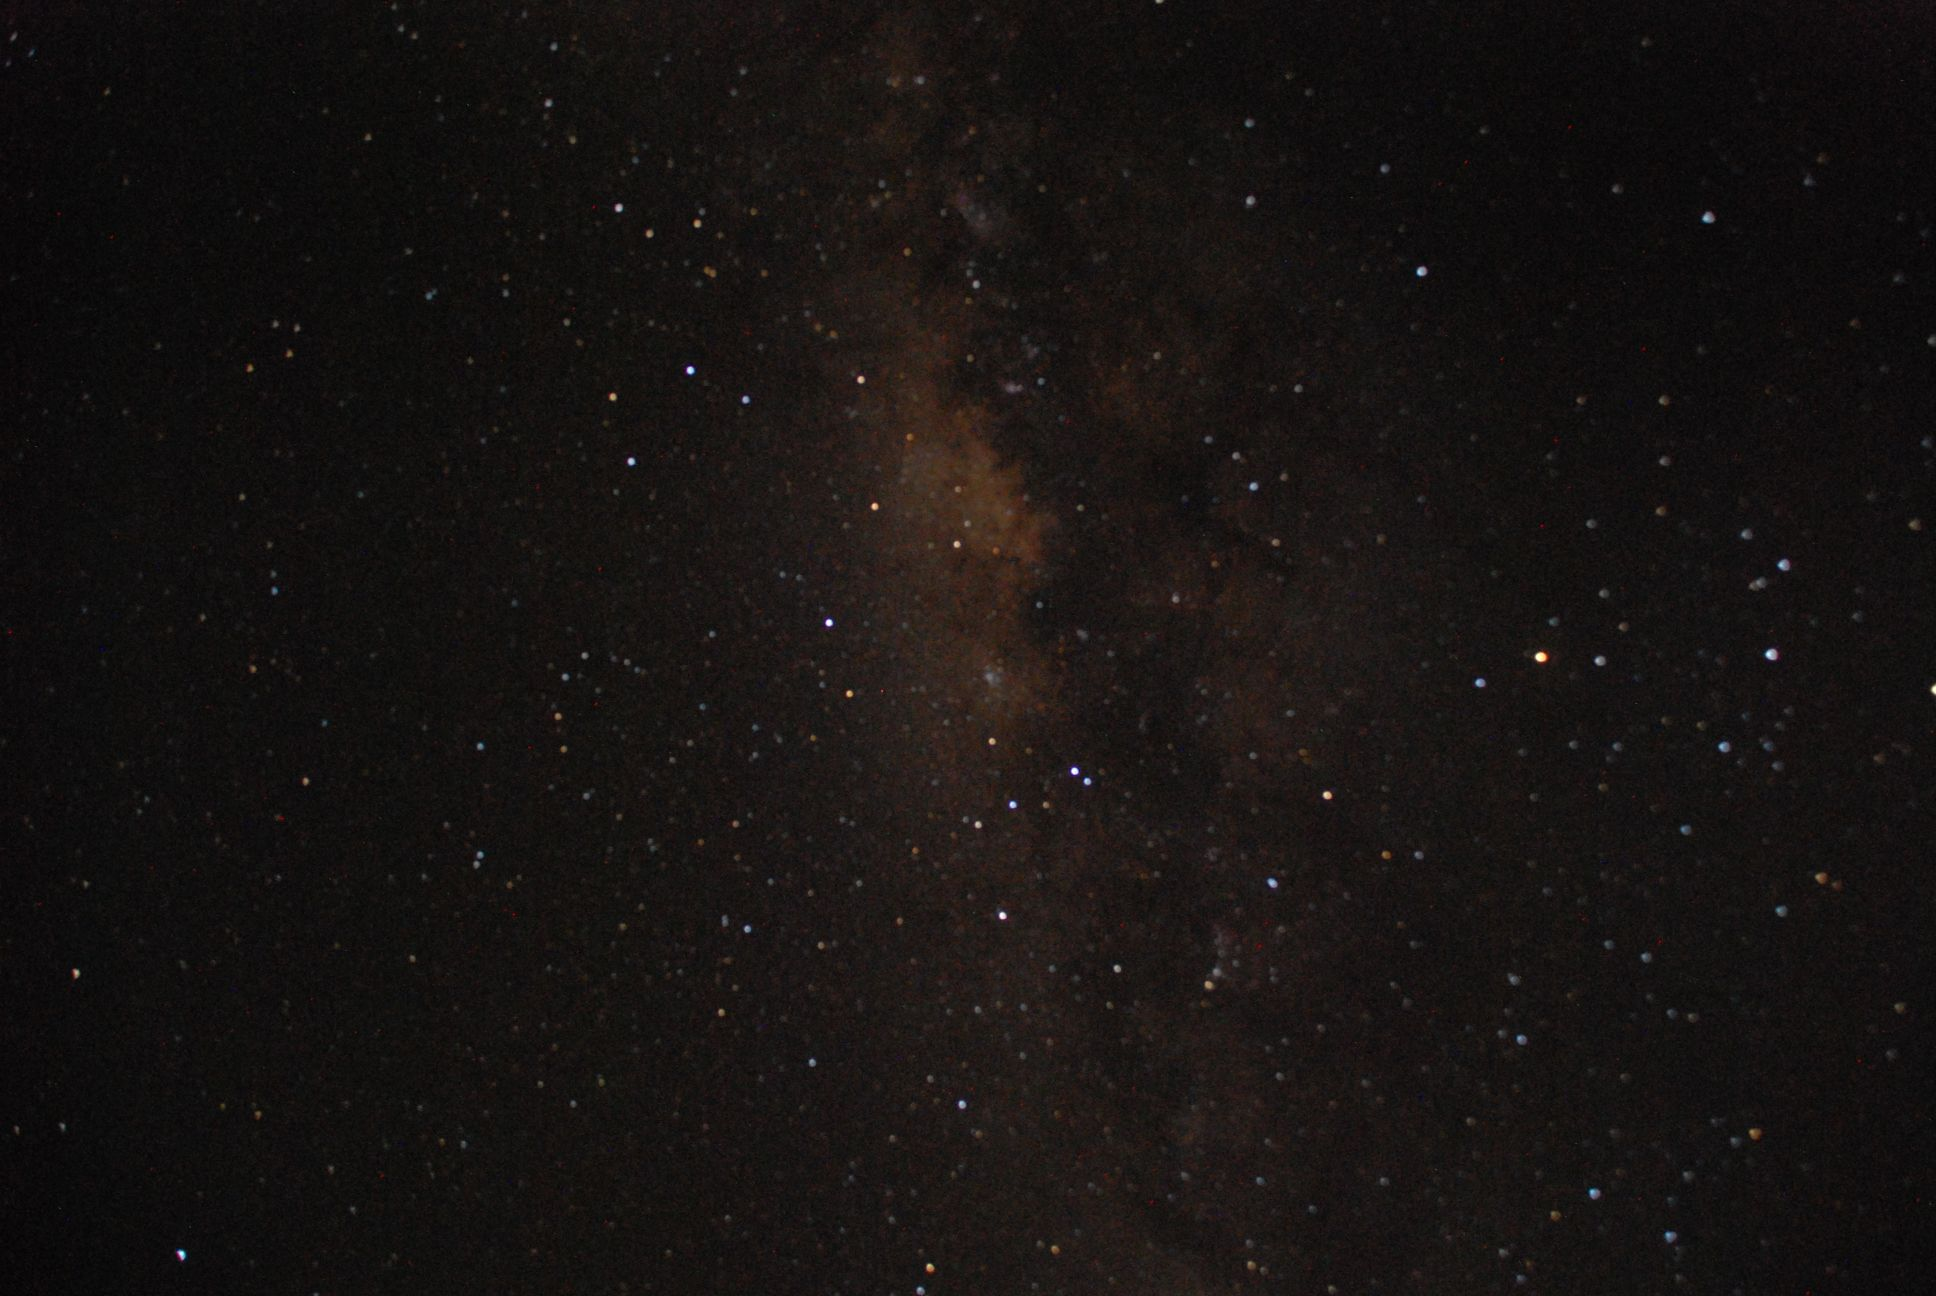 we will miss Australia's amazing night sky